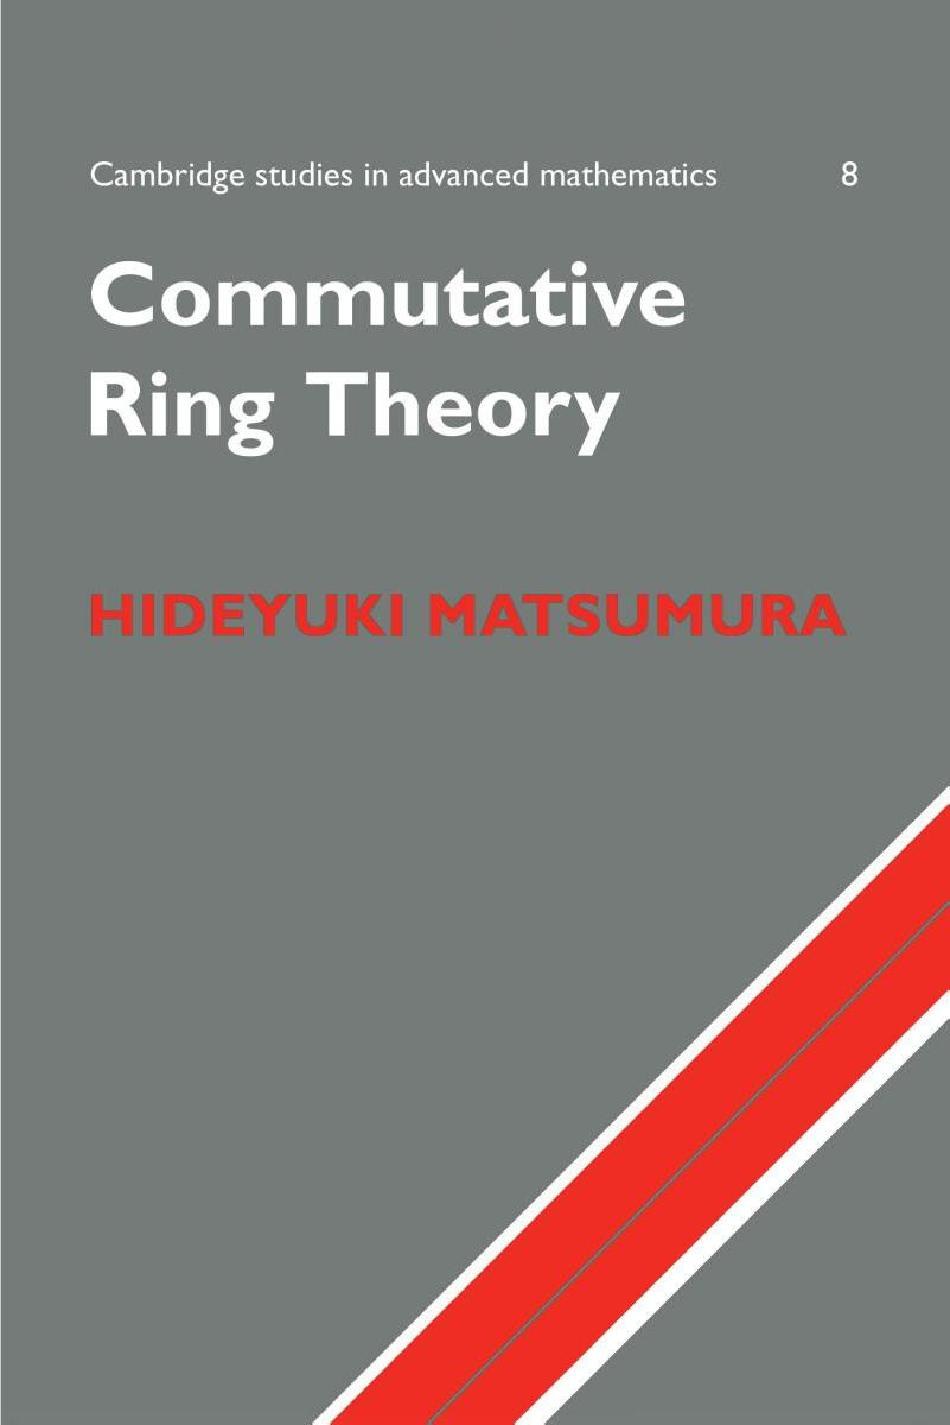 Commutative ring theroy